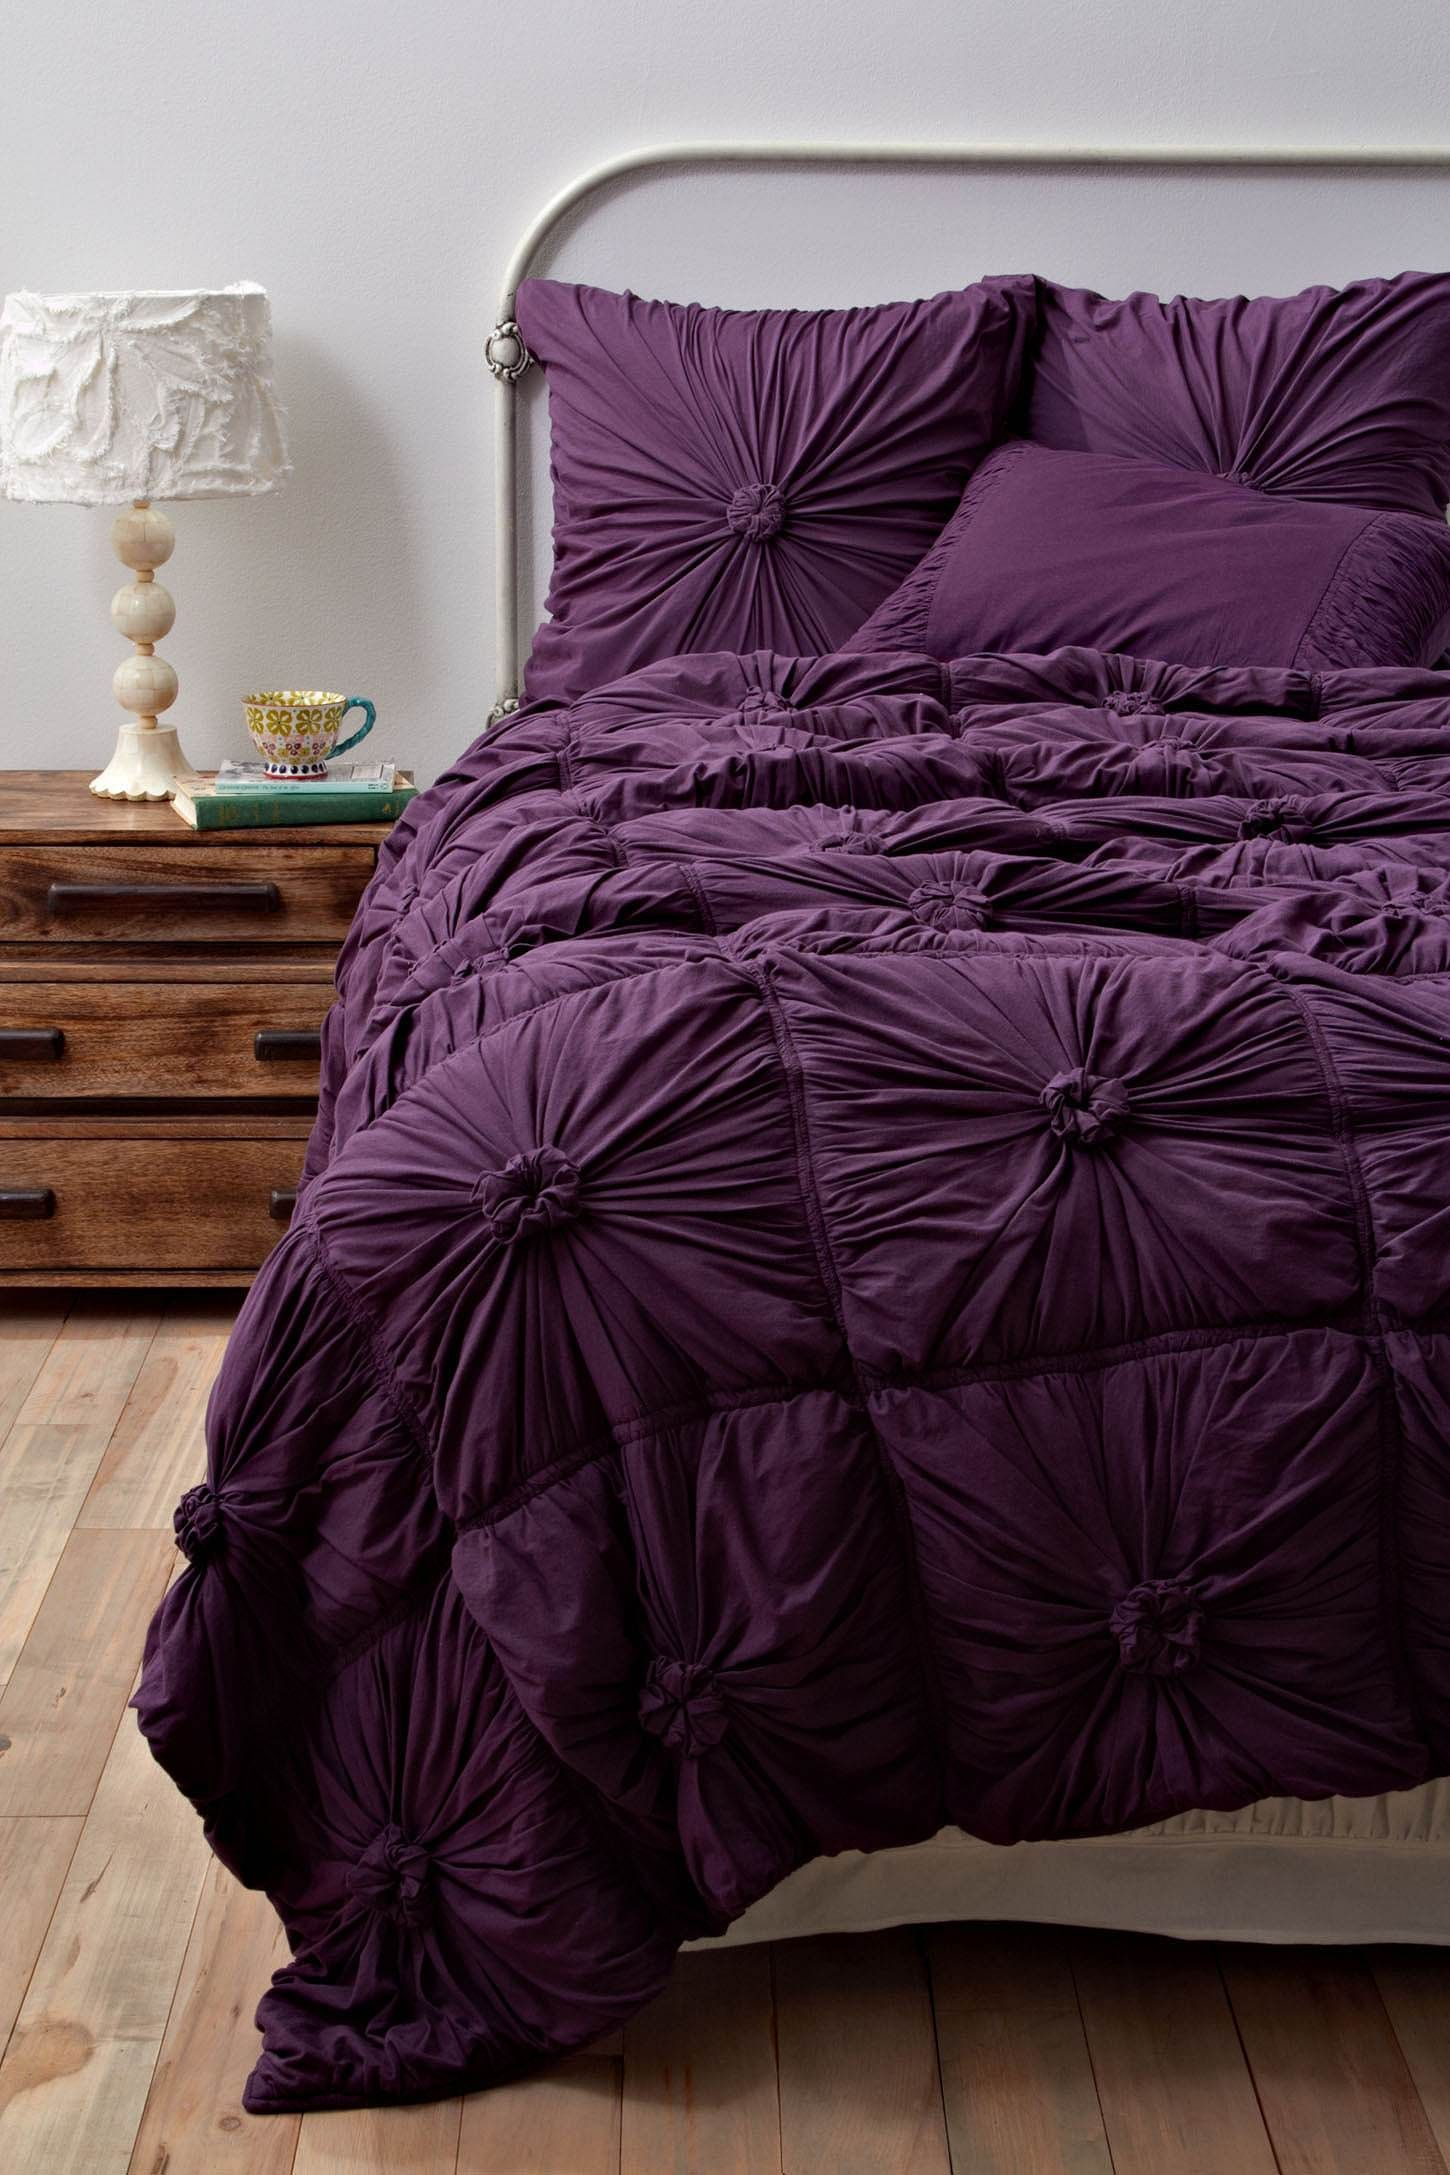 Could make something very similar to this! | DIY | Pinterest ... : purple quilted bedspreads - Adamdwight.com